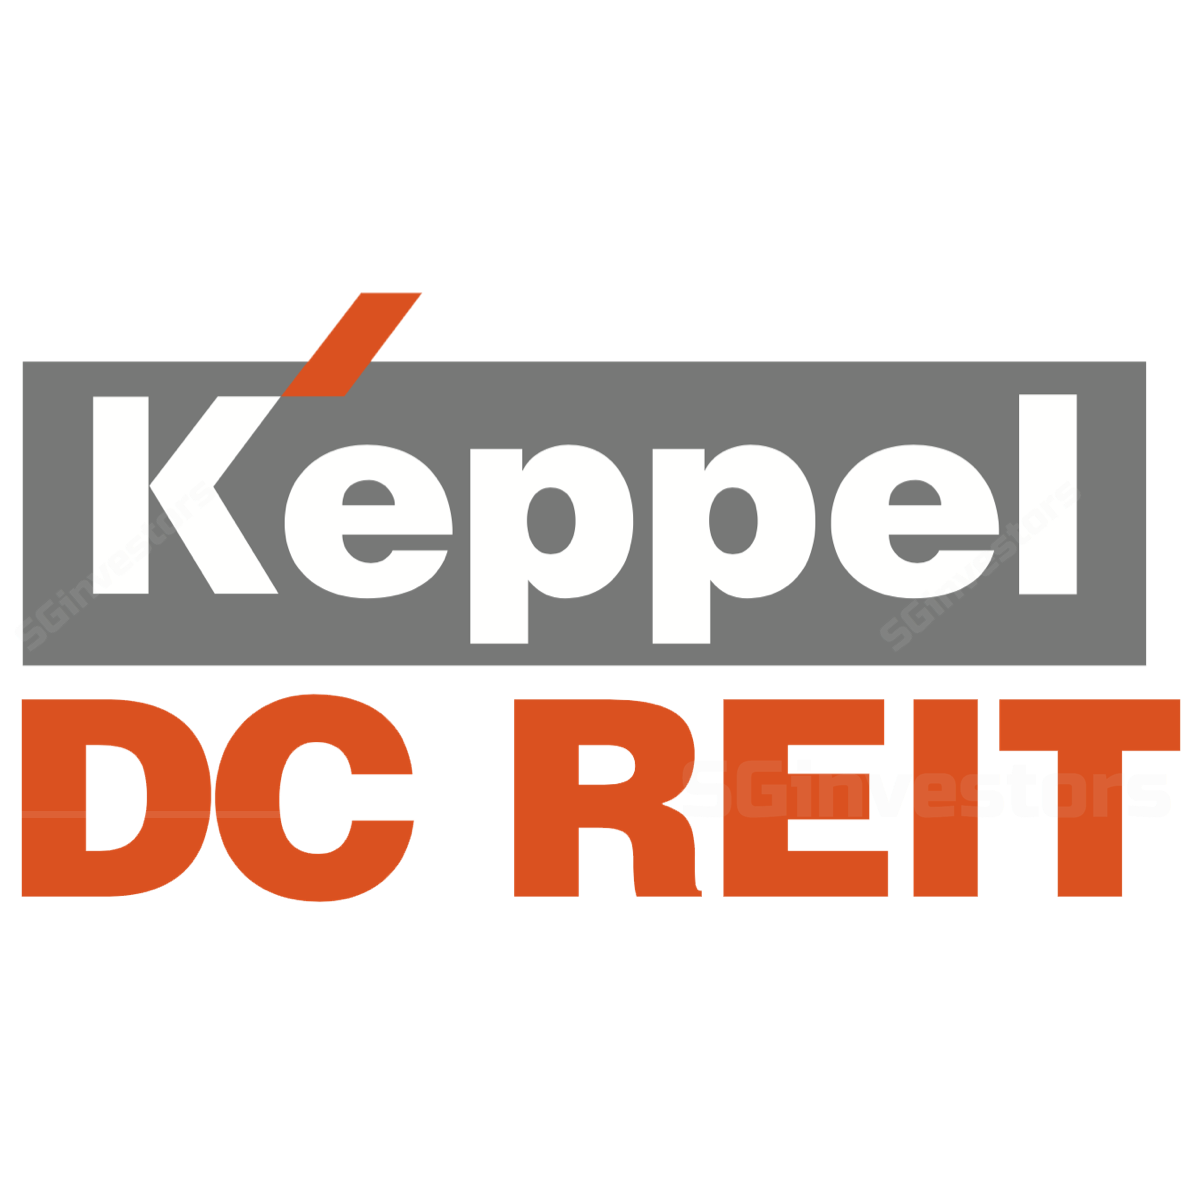 Keppel DC REIT - DBS Vickers 2017-01-24: The world's my playground, acquisitions to come!